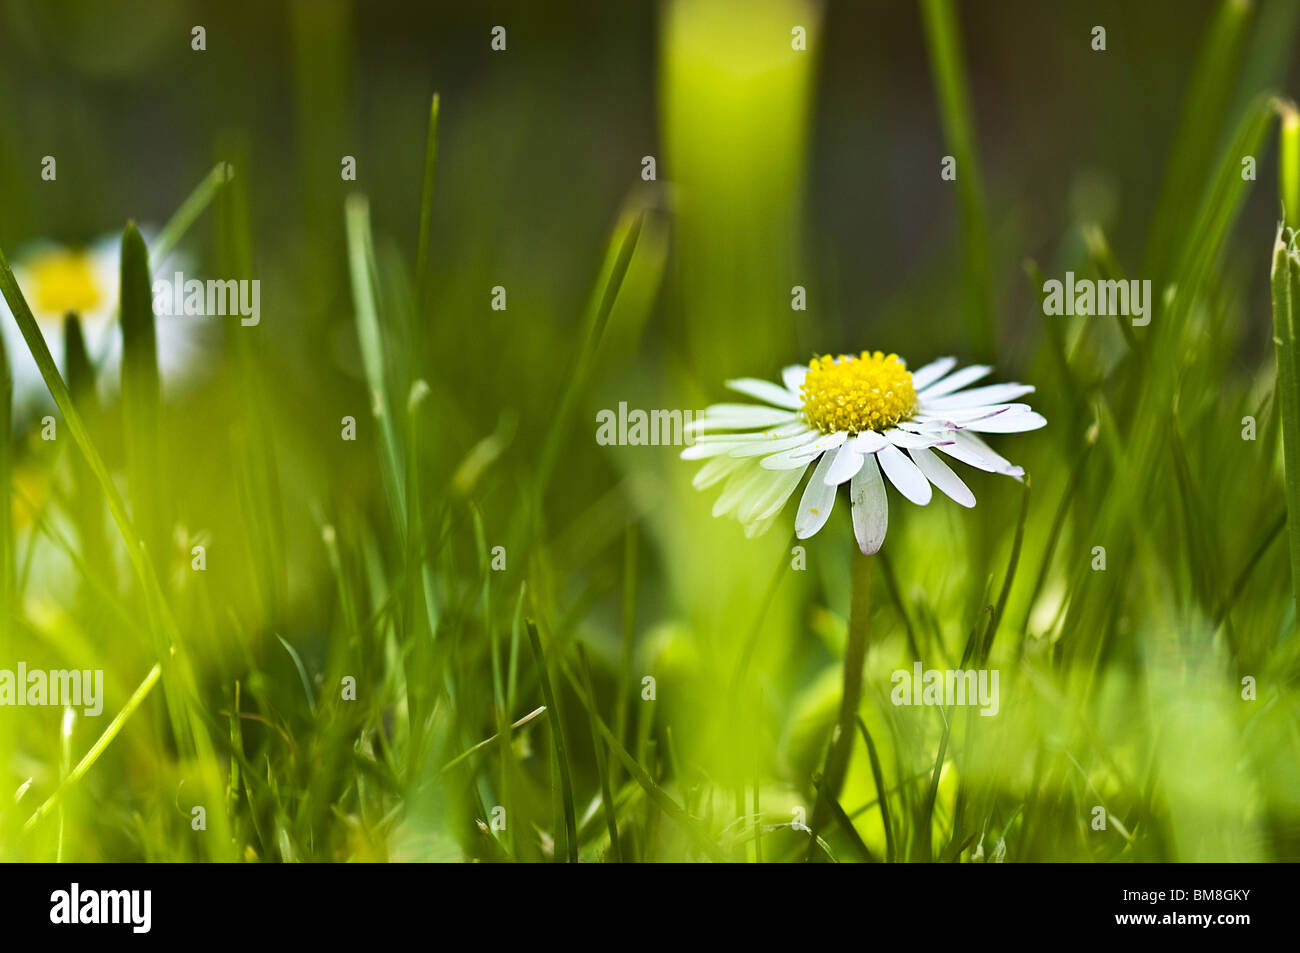 Daisy Photo Stock